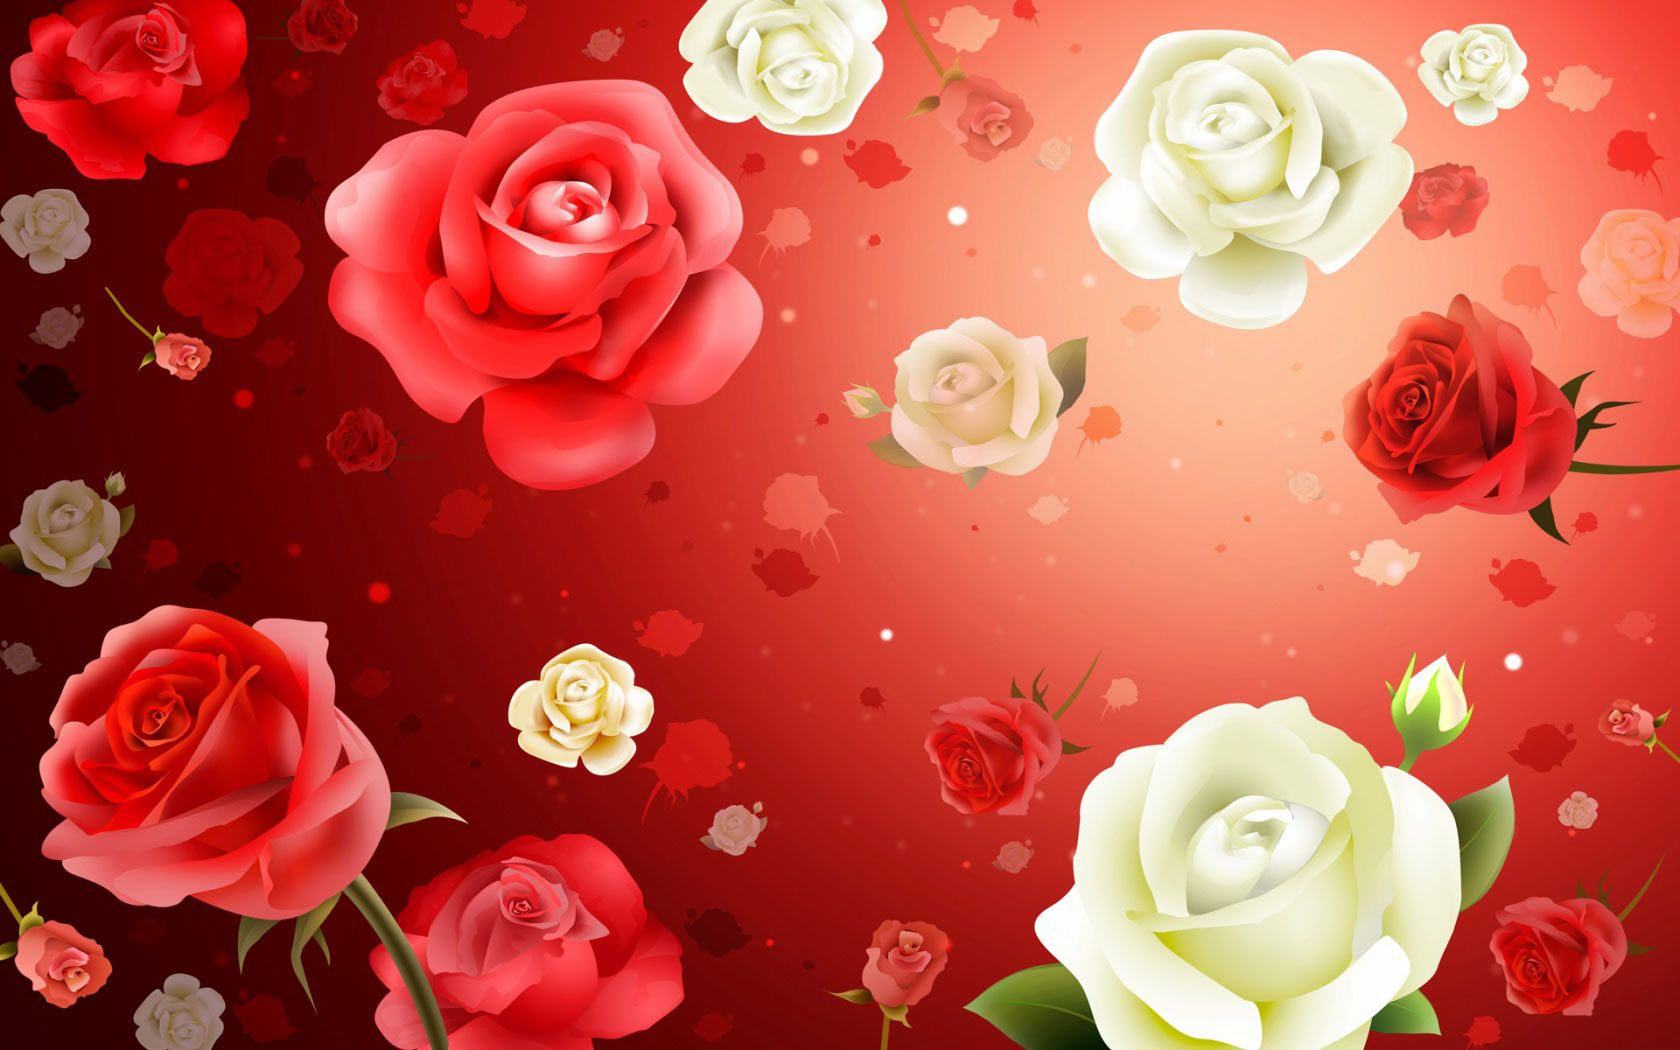 Roses Flowers Backgrounds Windows 7 Desktop Wallpaper High Quality Wallpapers Wallpaper D Rose Flower Wallpaper Flower Wallpaper Beautiful Flowers Wallpapers